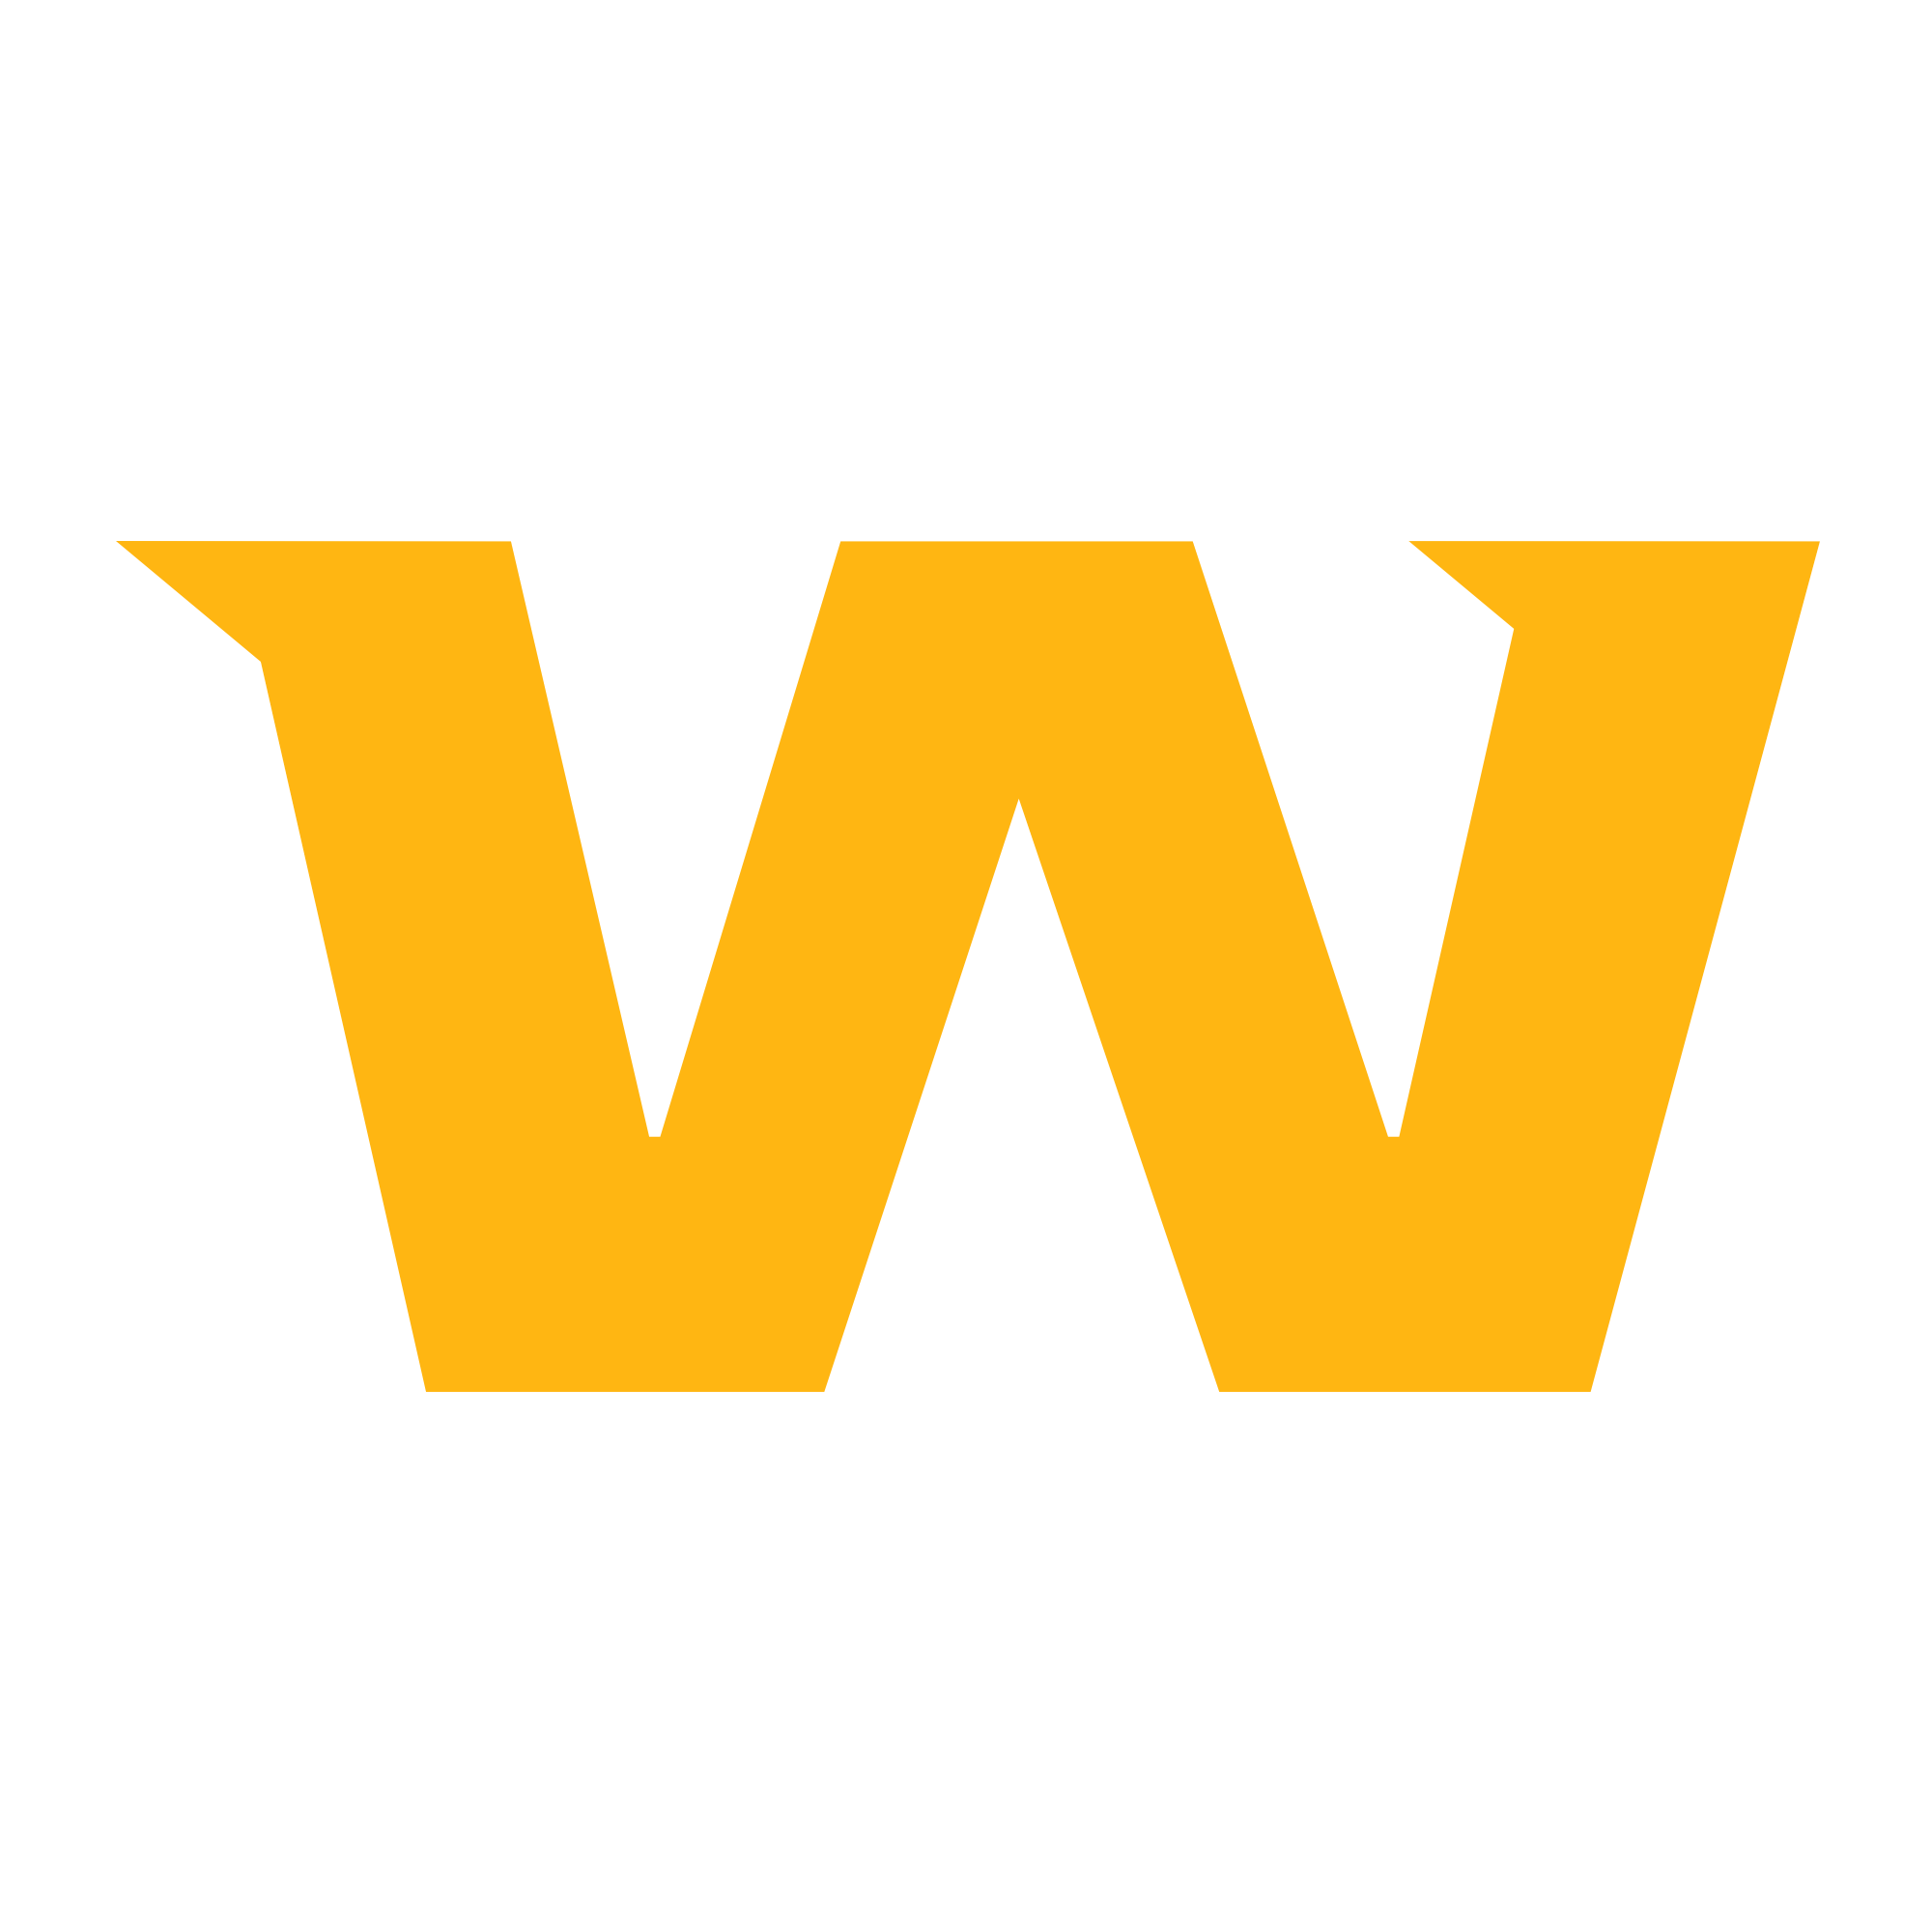 logo--clubs-was-mark-primary_was_gold